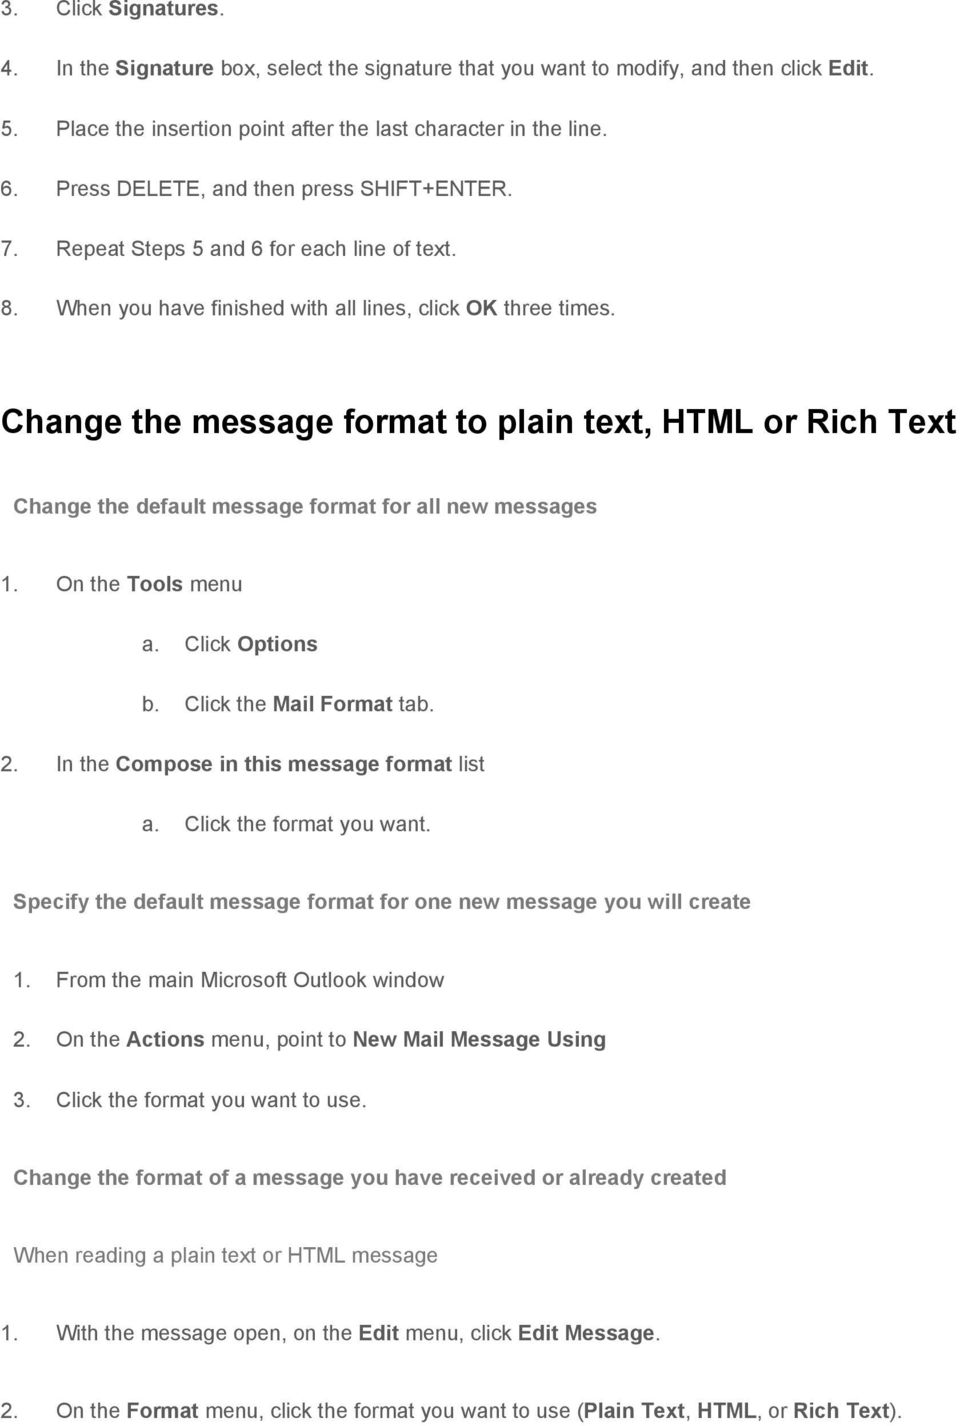 Change the message format to plain text, HTML or Rich Text Change the default message format for all new messages 1. On the Tools menu a. Click Options b. Click the Mail Format tab. 2.